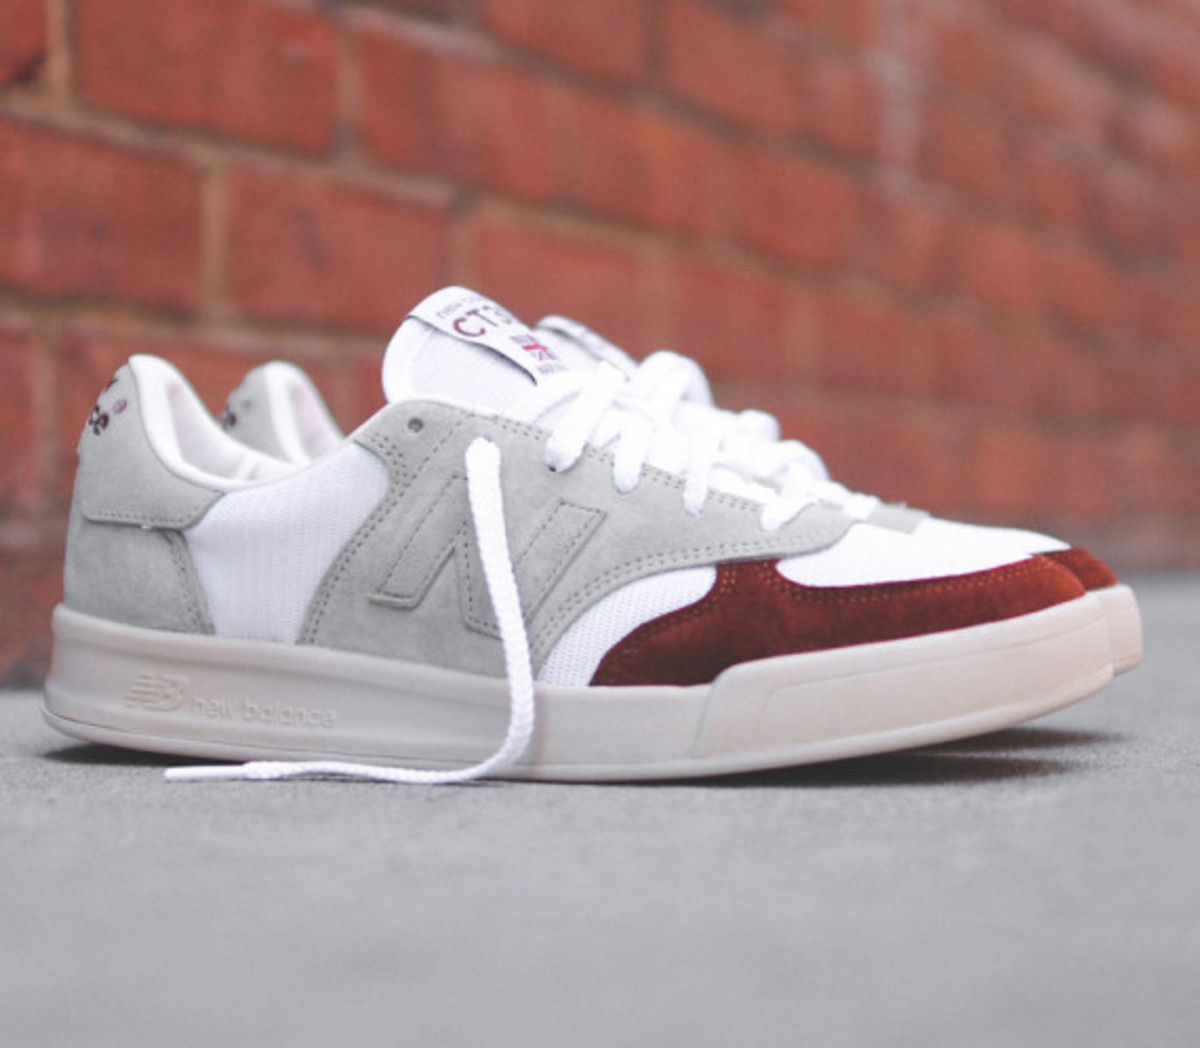 New Balance x 24 Kilates x SneakersNStuff x Hanon x Firmament - CT300 Collection | Available - 5